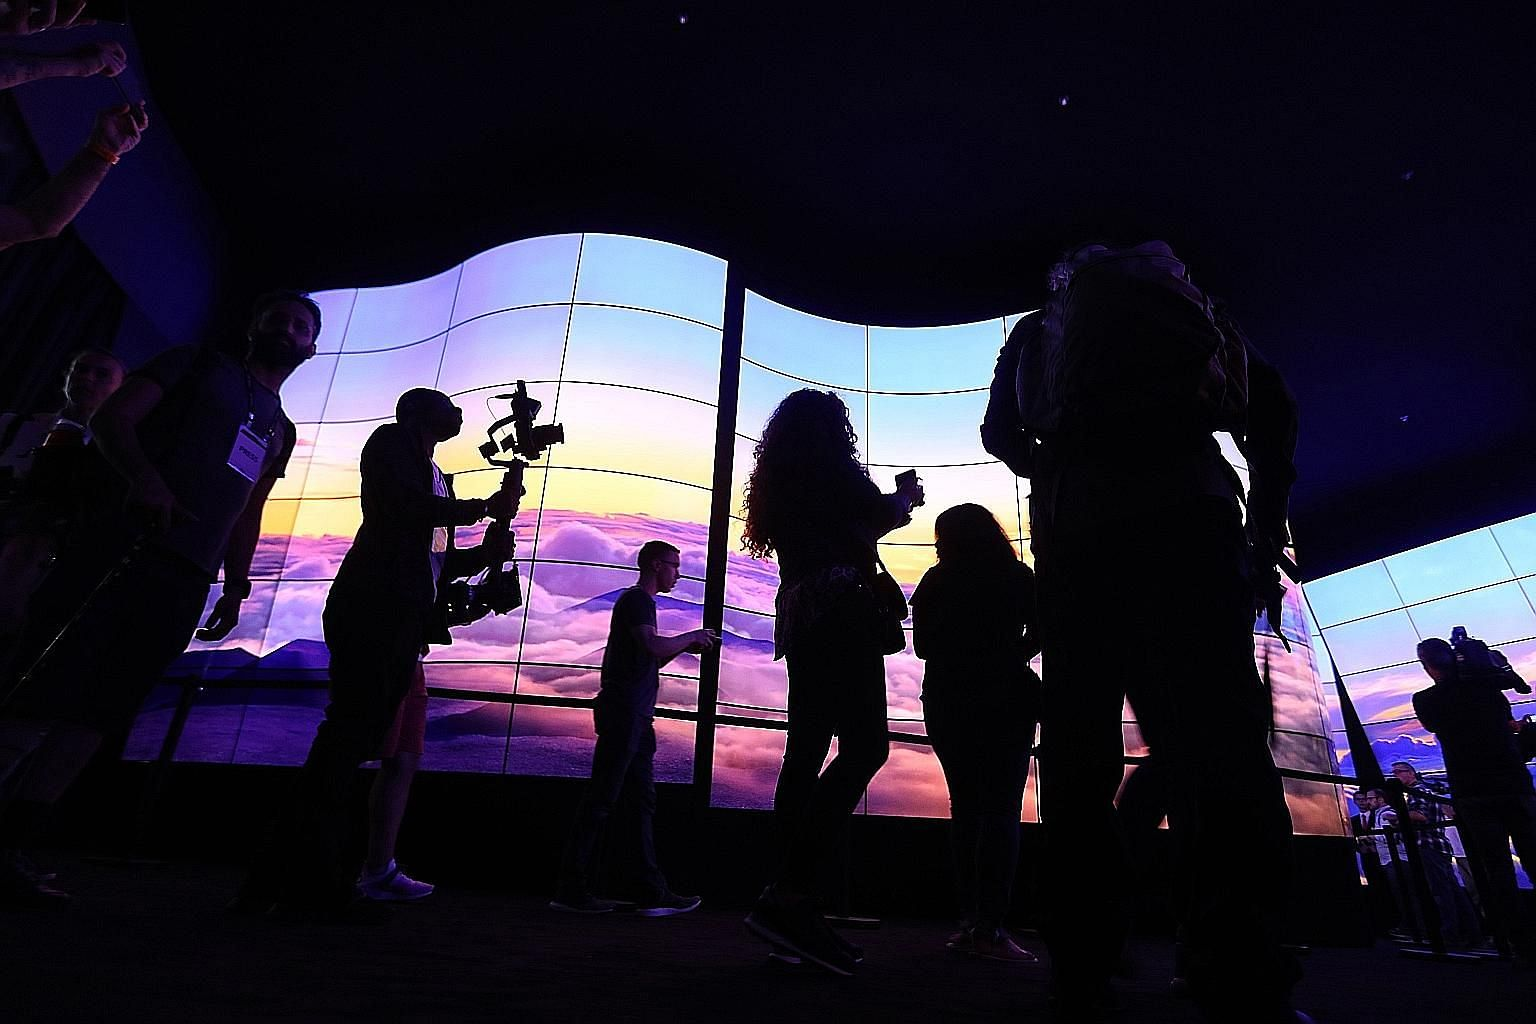 Curved TV screens from LG Electronics on display at the IFA consumer electronics show in Berlin earlier this year. The South Korean conglomerate is shifting its focus to future technologies, such as flexible displays.